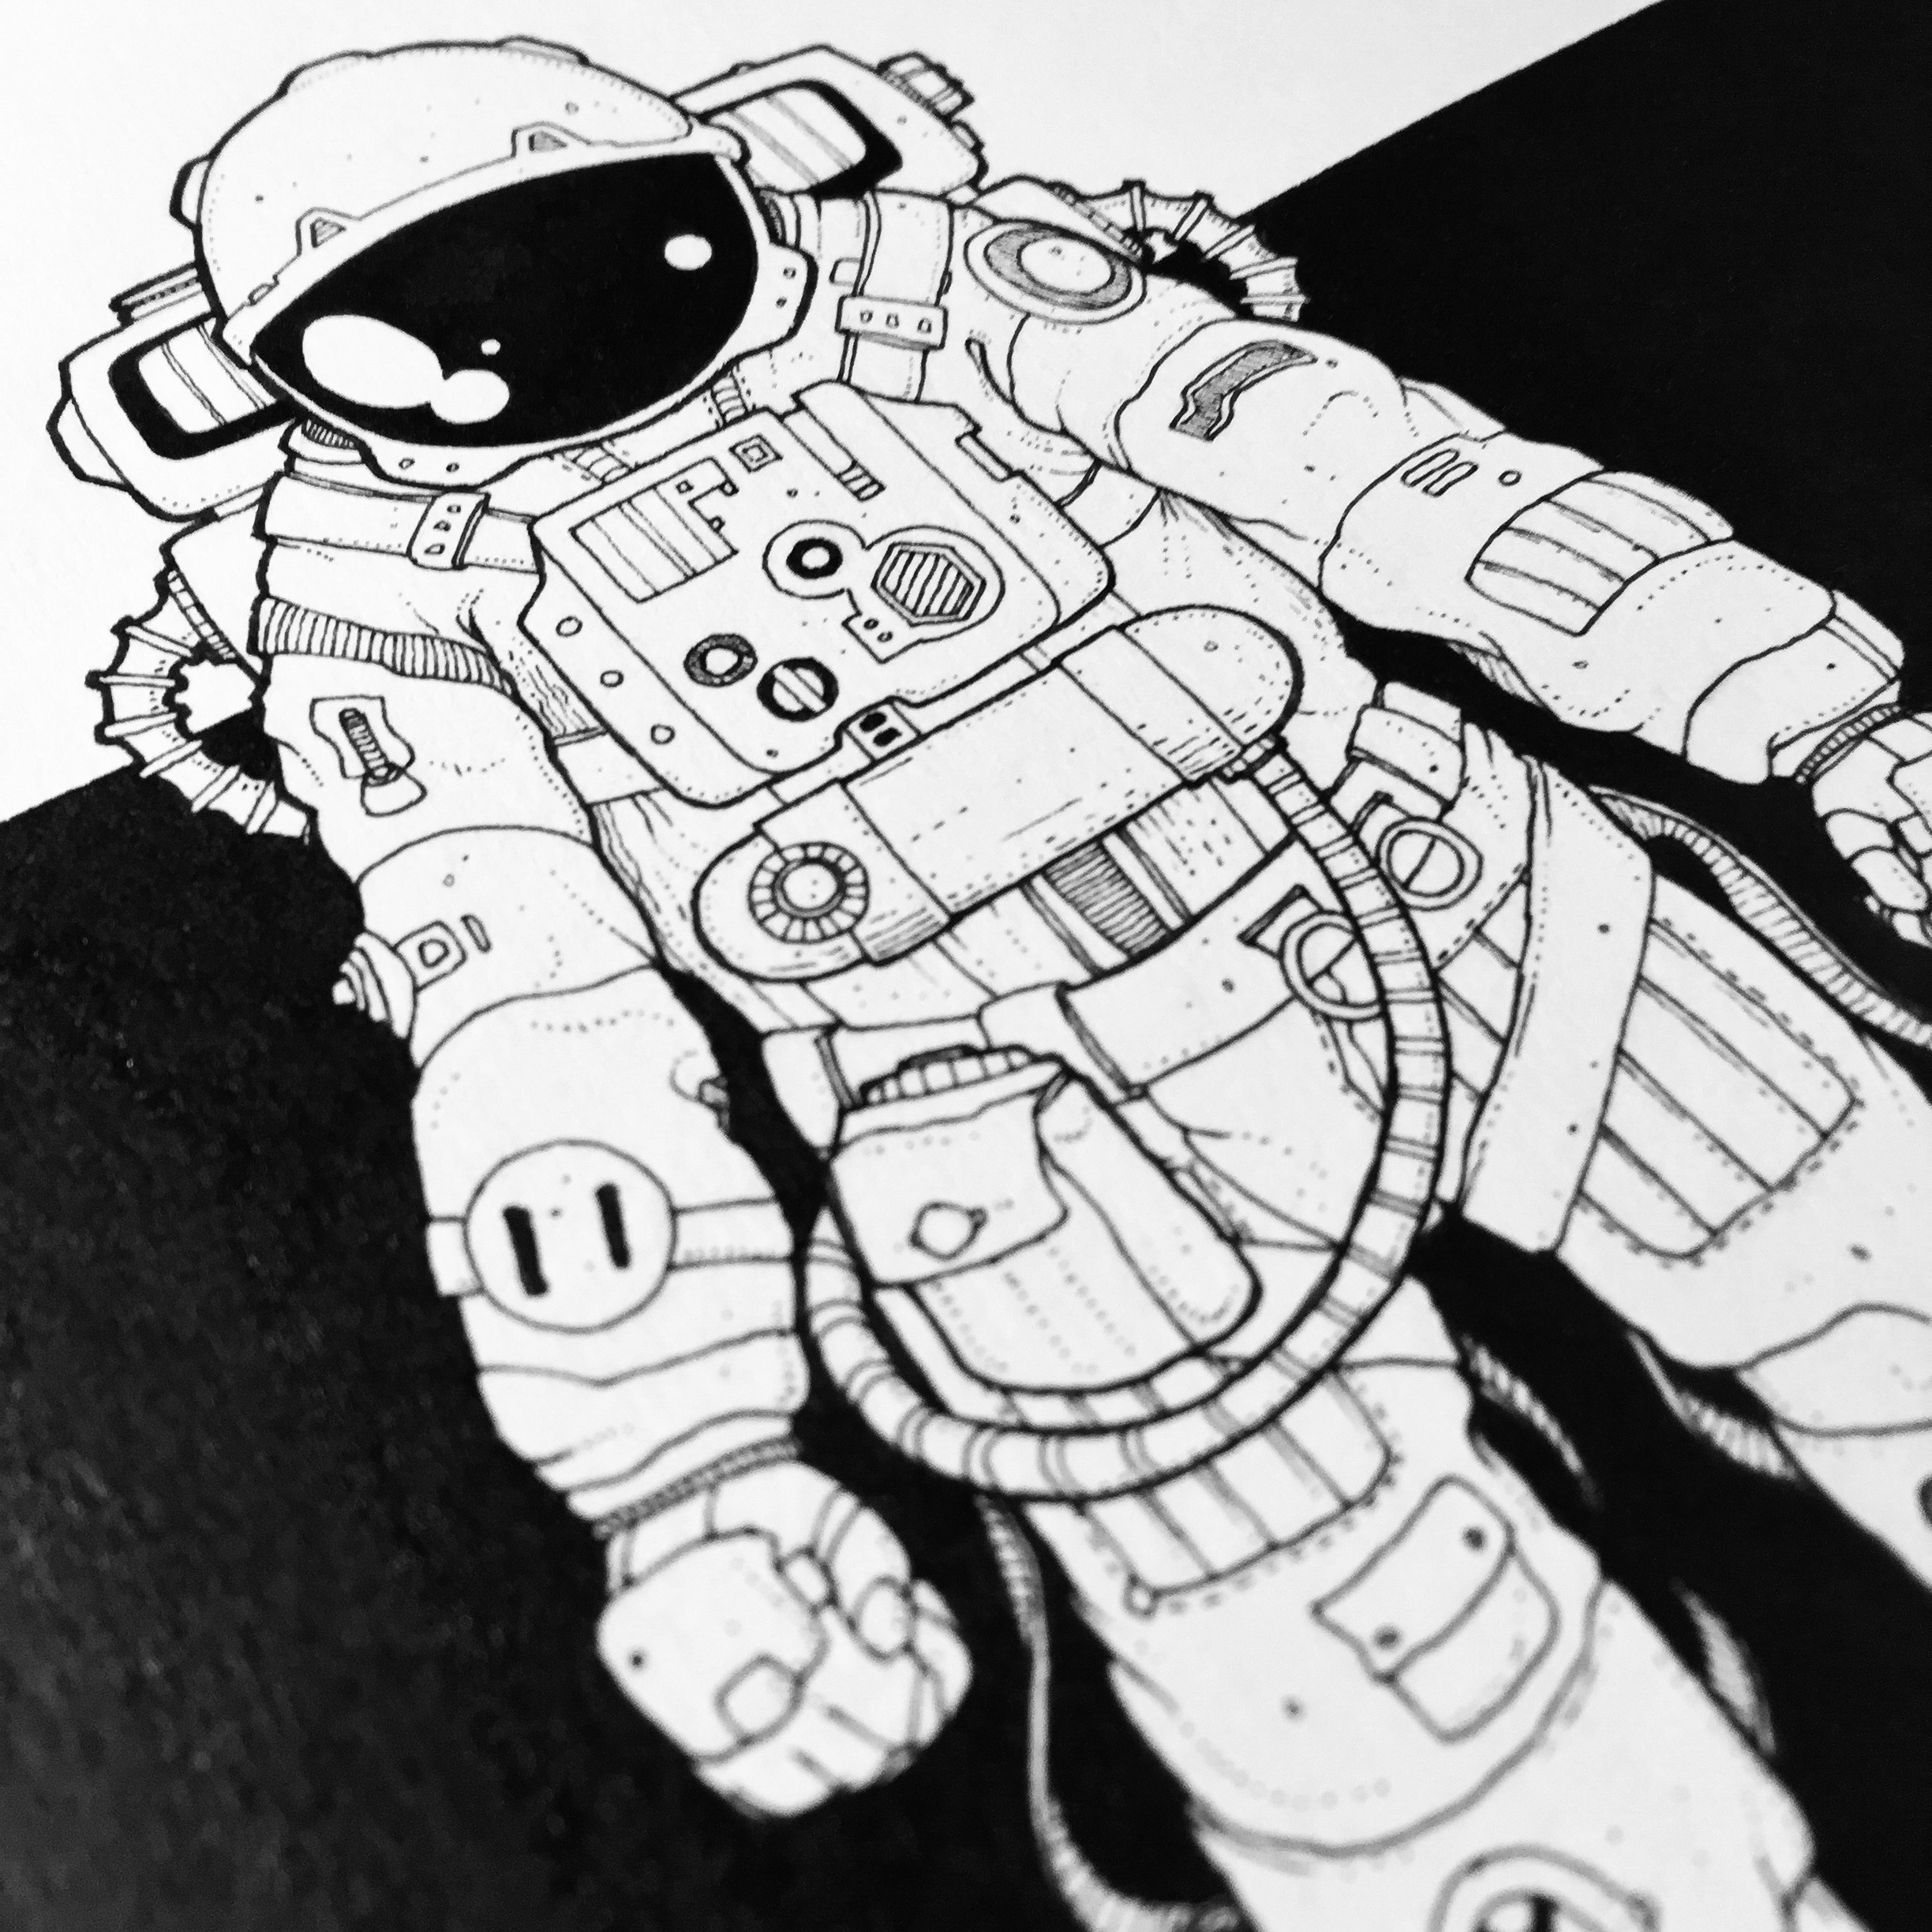 astronaut floating sketch - Google Search | Strato 2016 ...